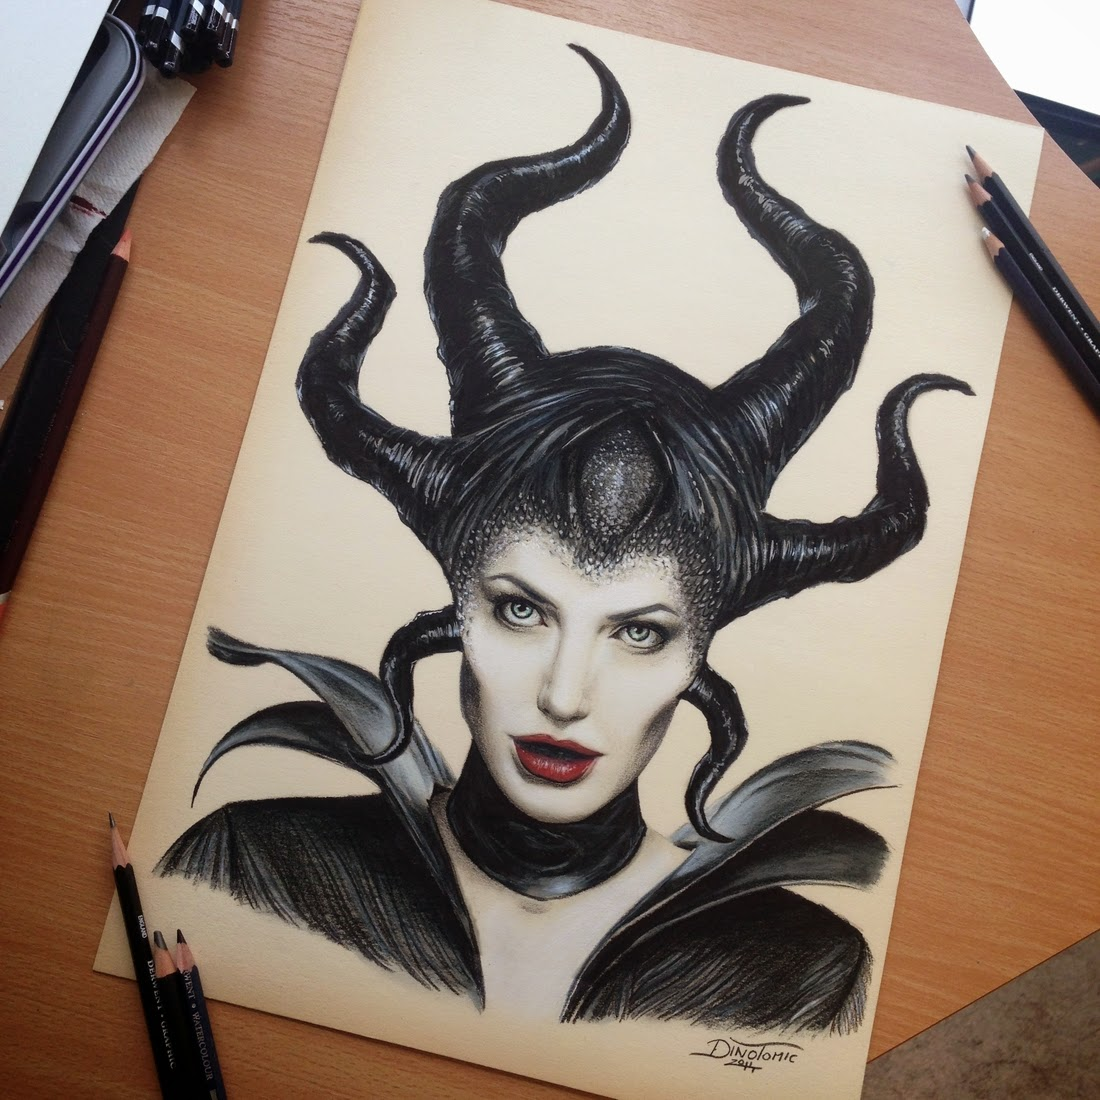 24-Maleficent-Angelina-Jolie-Dino-Tomic-AtomiccircuS-Mastering-Art-in-Eclectic-Drawings-www-designstack-co